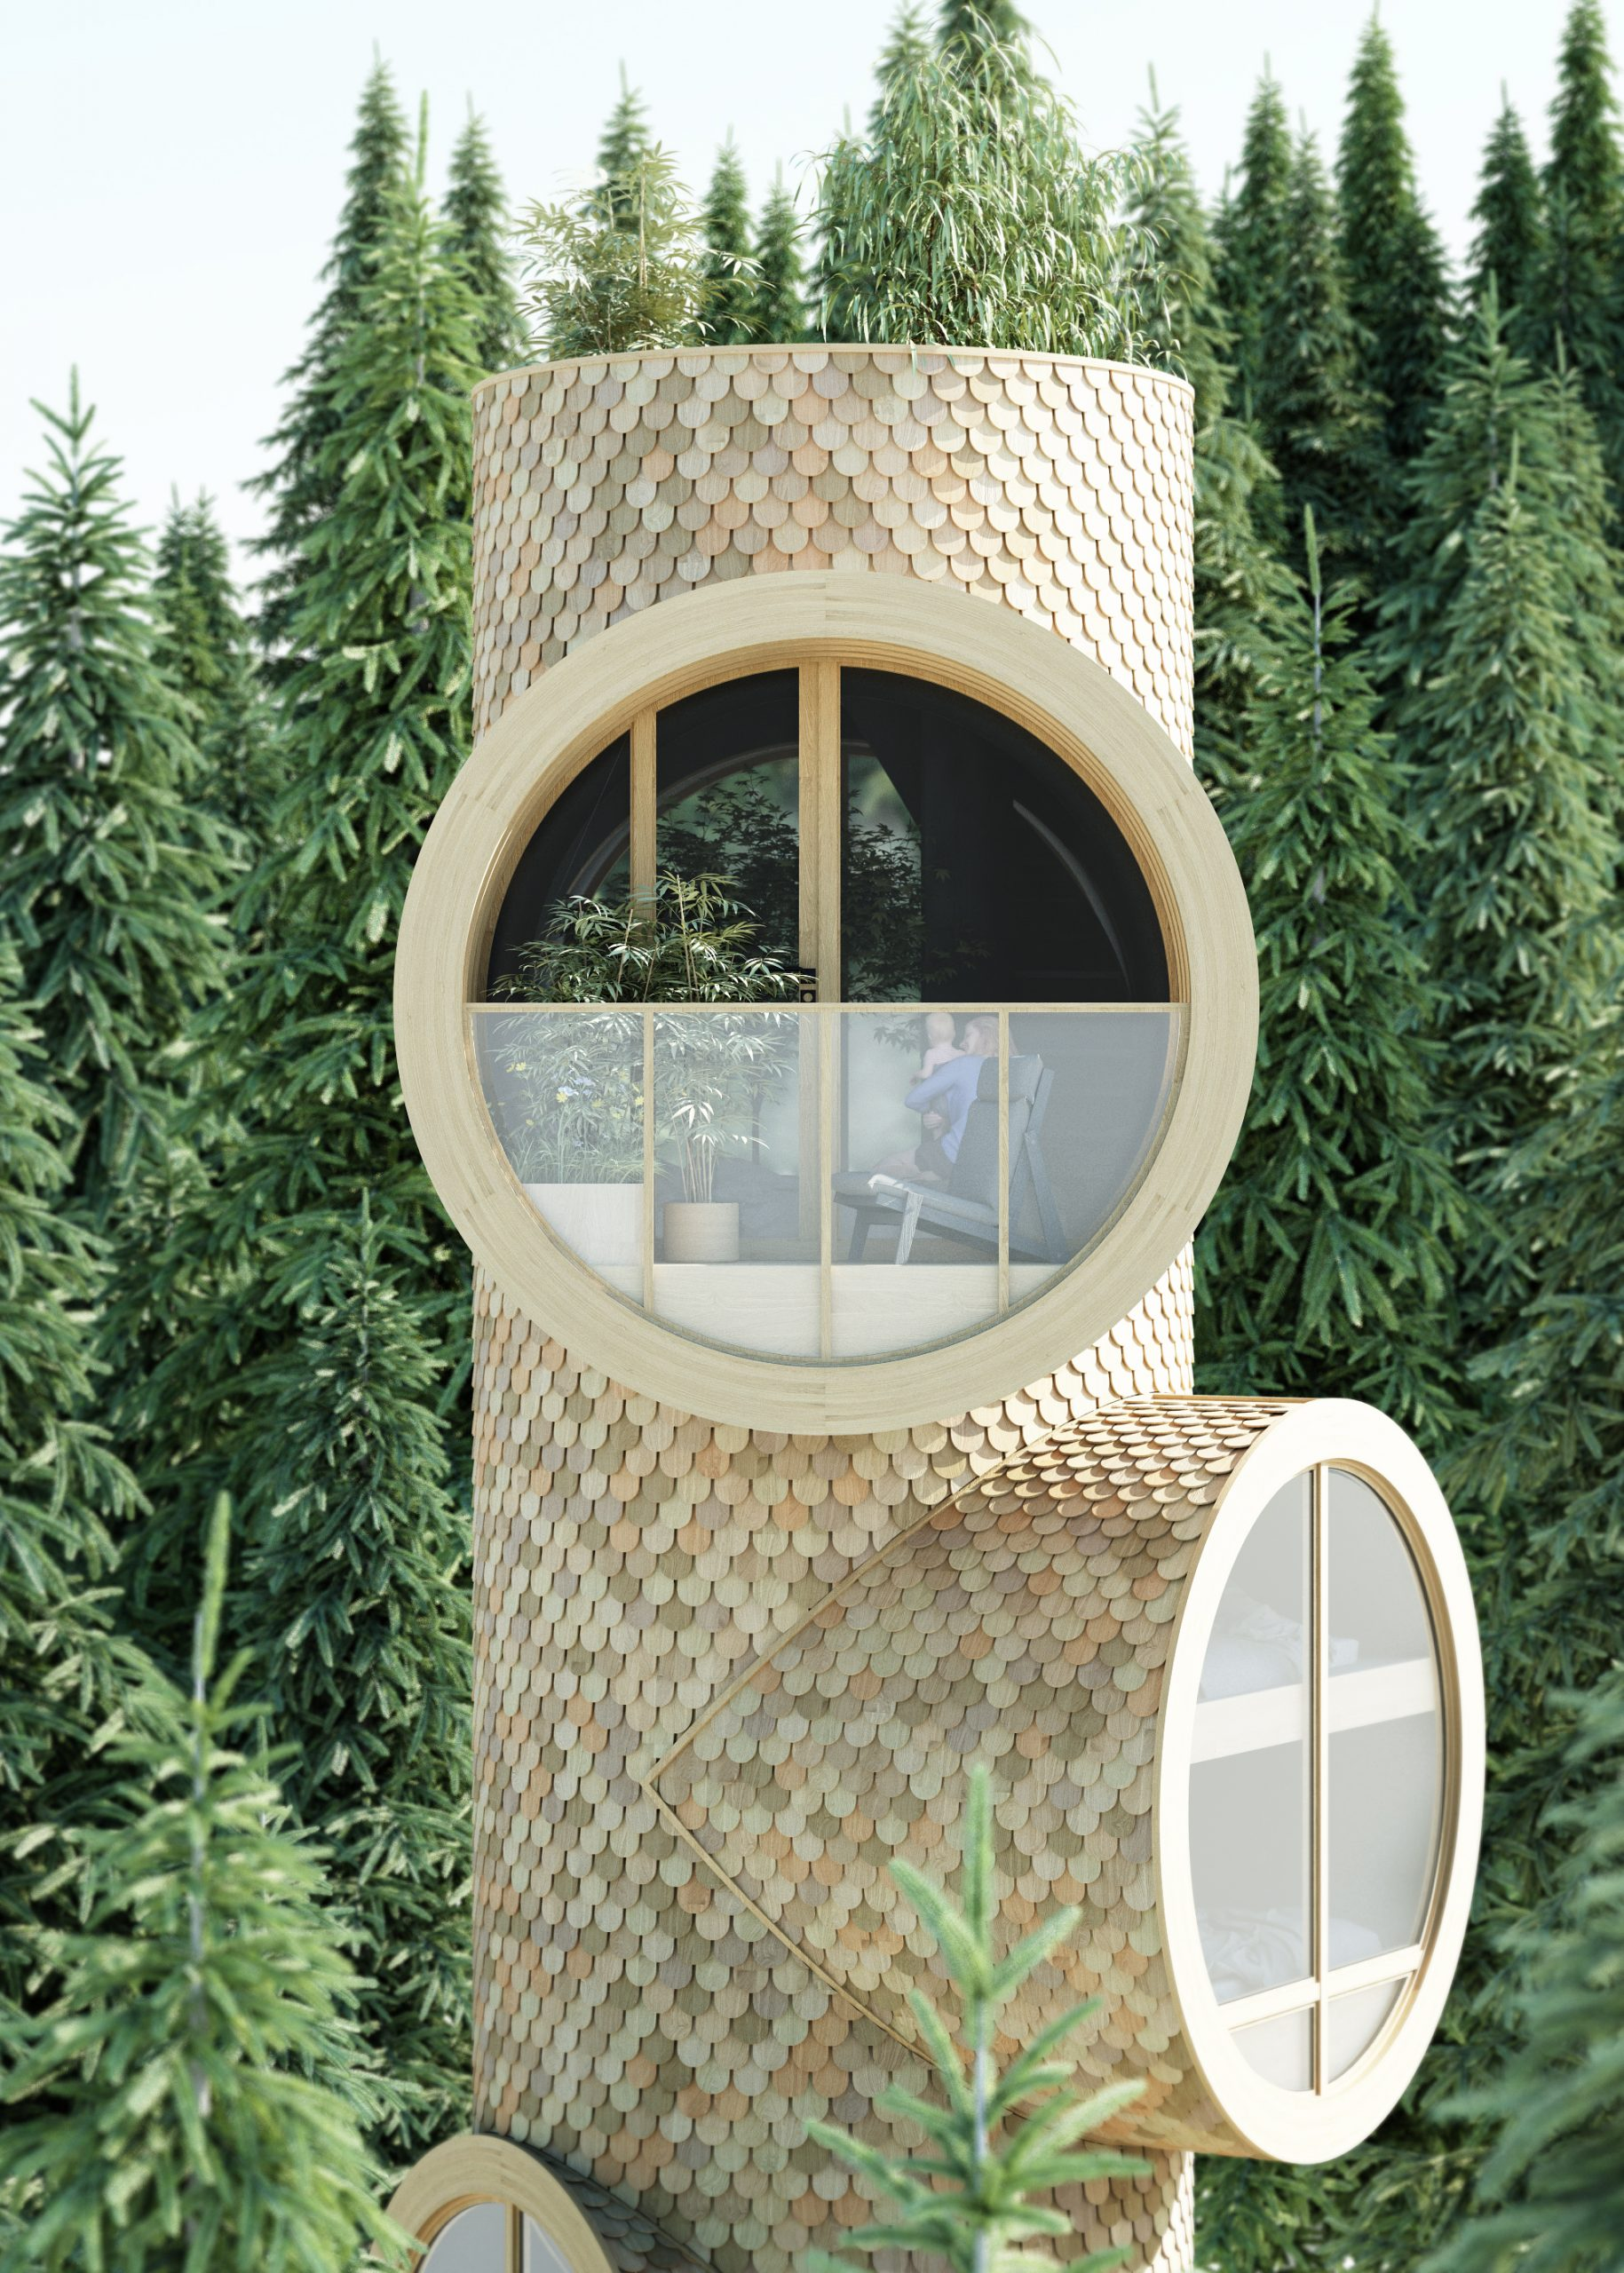 Modular Tree Houses by Precht | Eclectic Trends